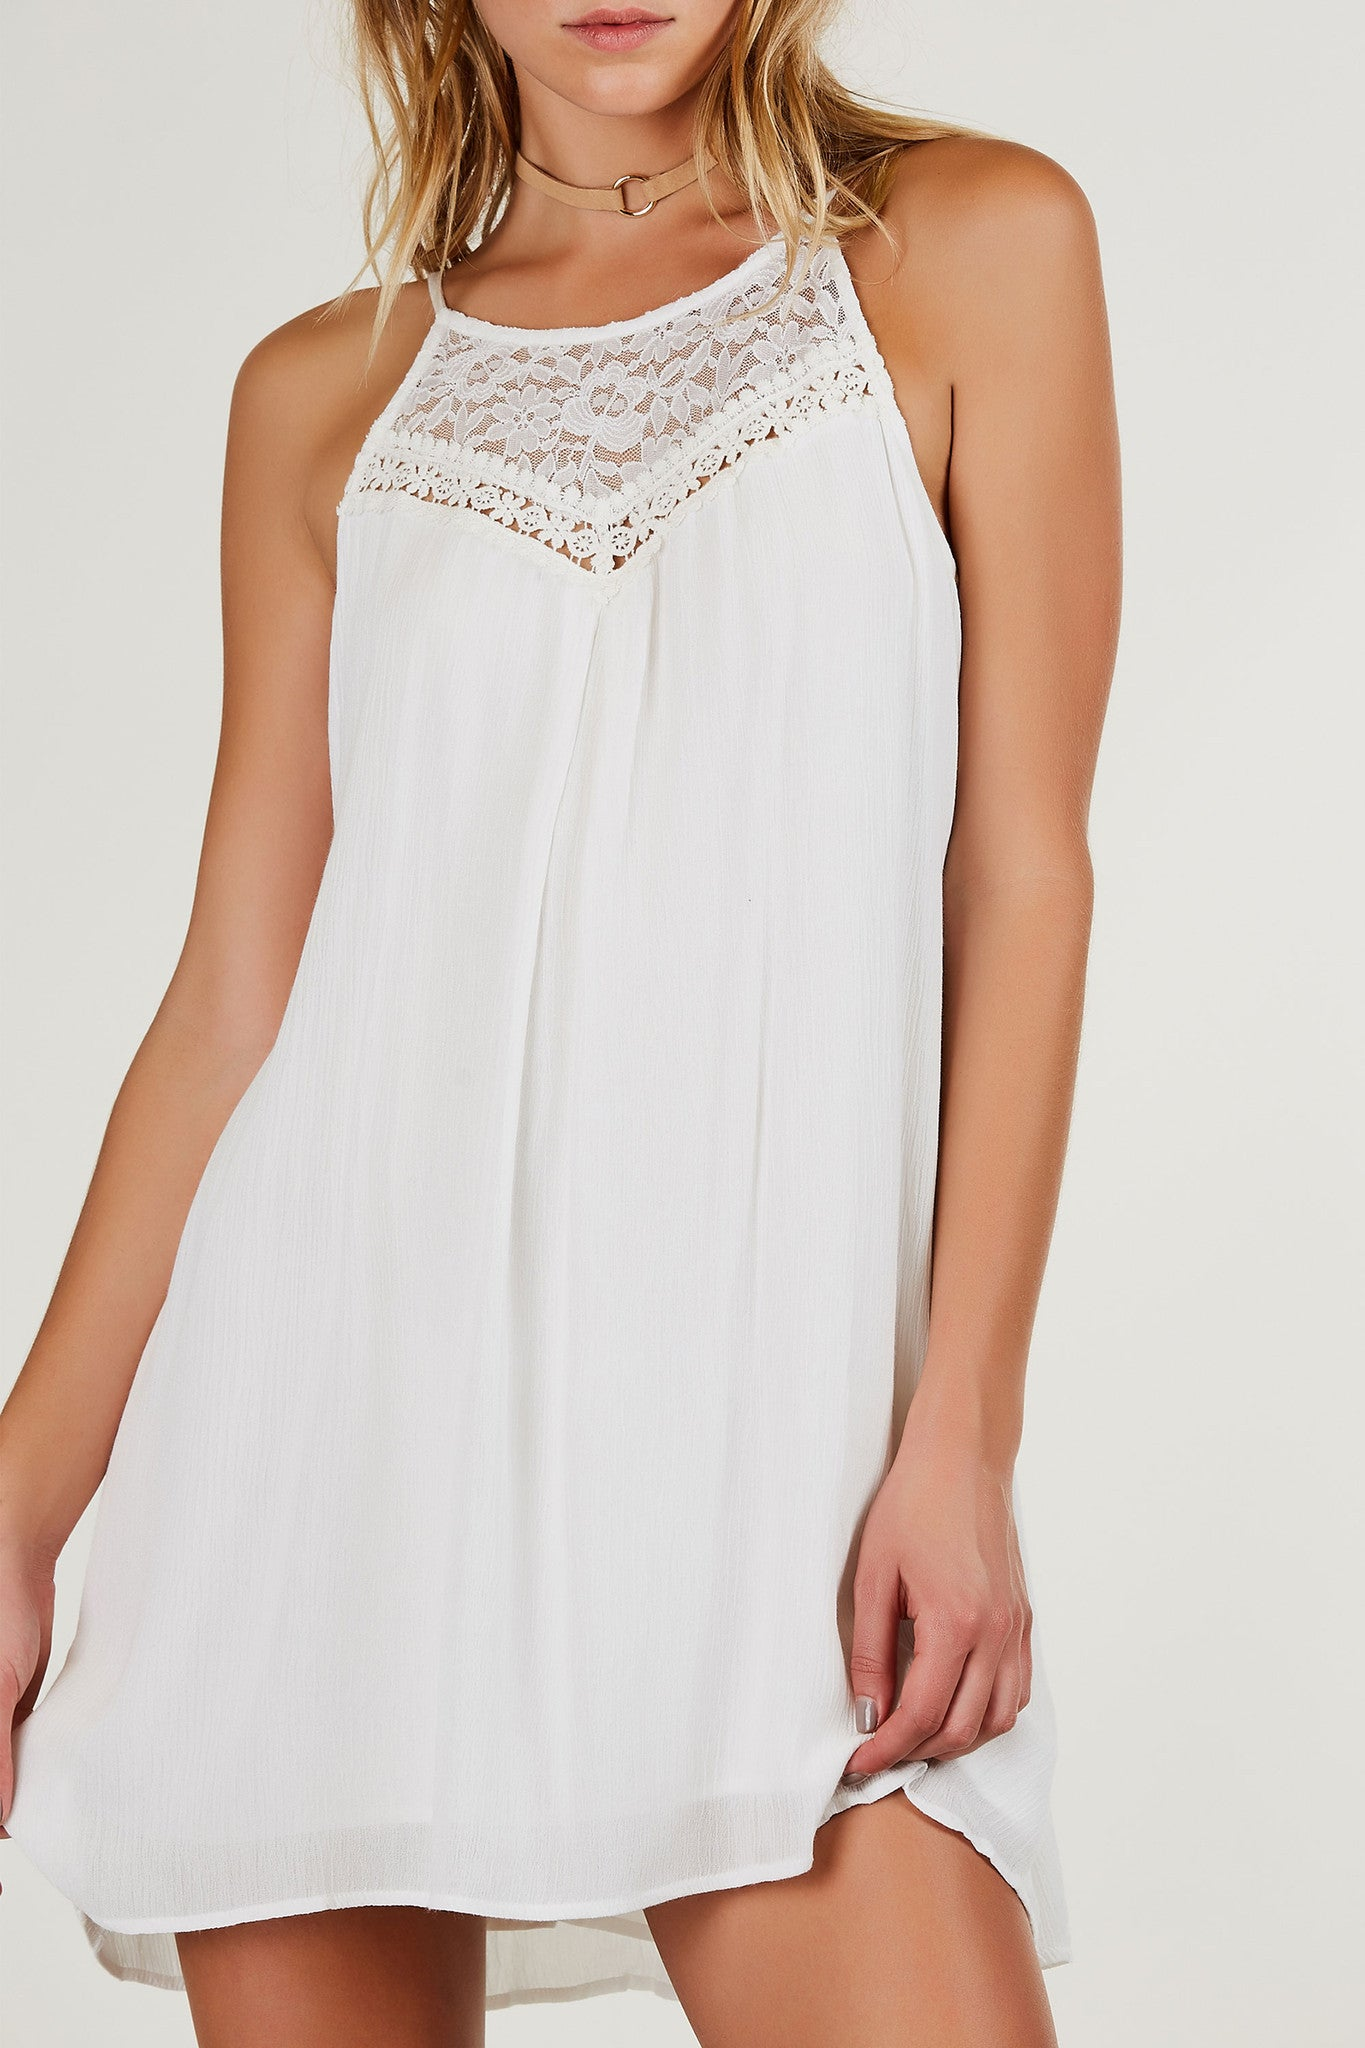 Flowy high neck sleeveless dress with lace panel design and crochet detailing. Cut out back with lace up finish and A-line hem.